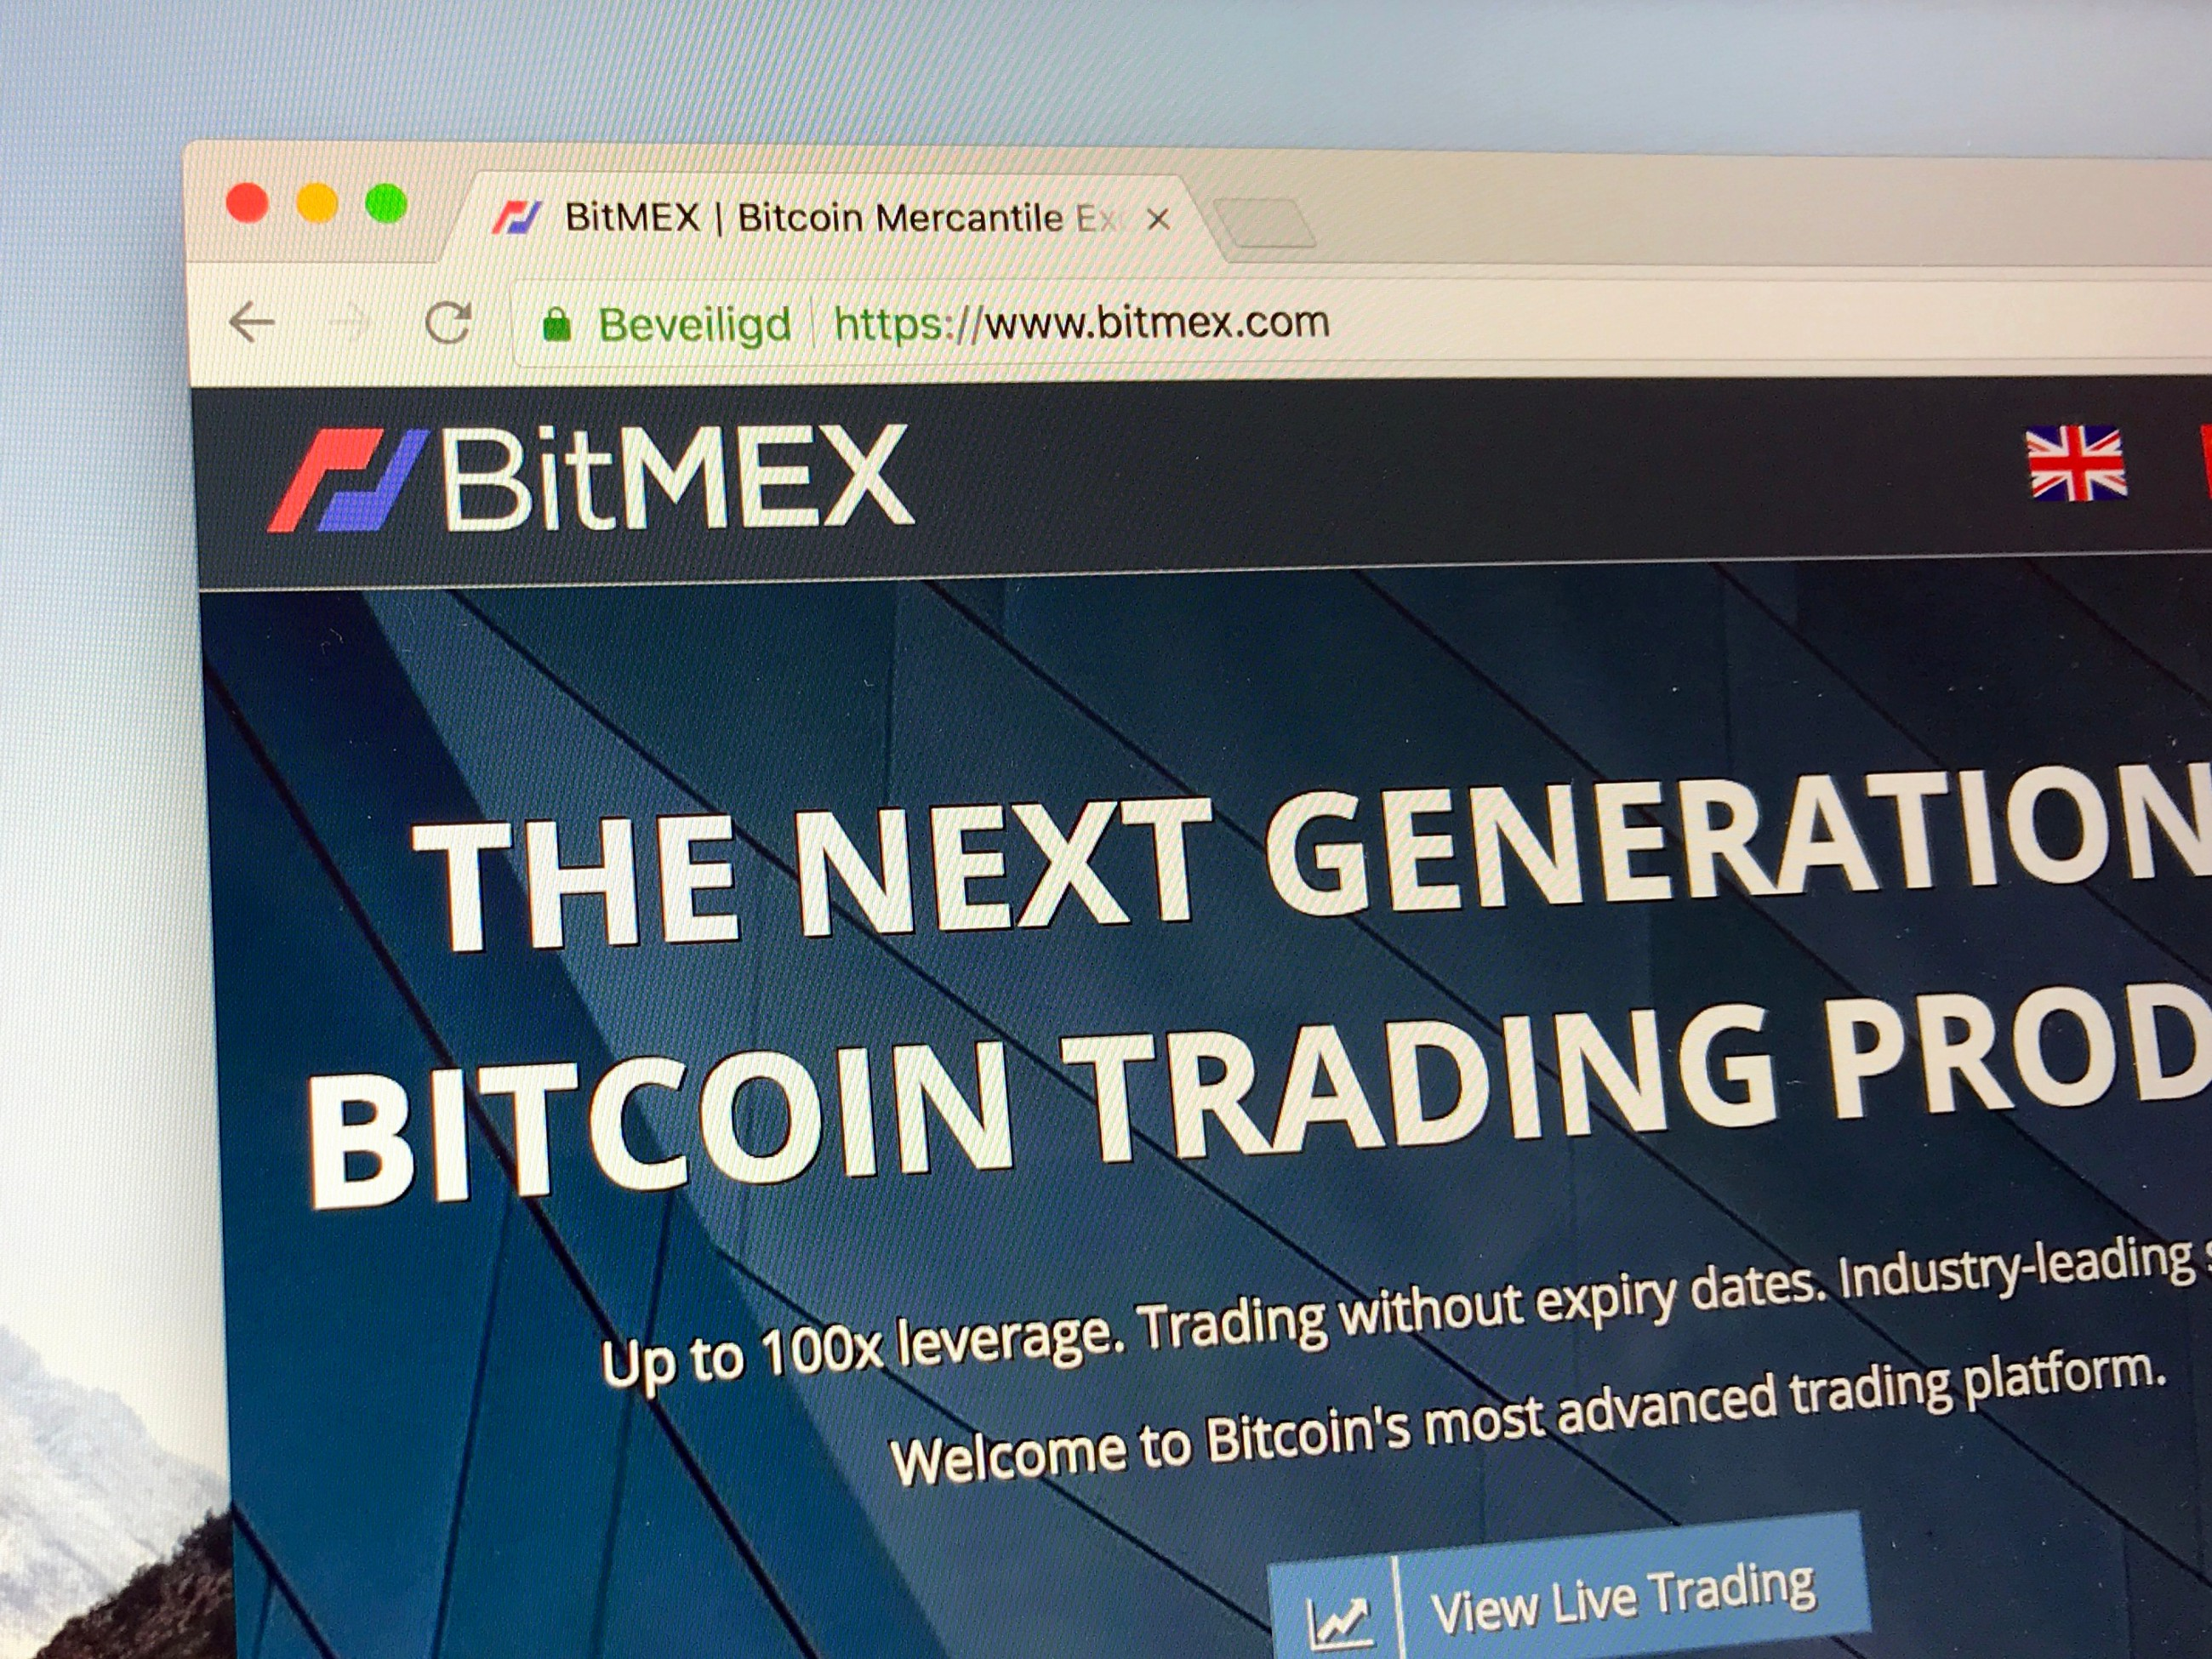 Cryptocurrency Trading Bible Four: Secrets of the Bitmex Masters - By